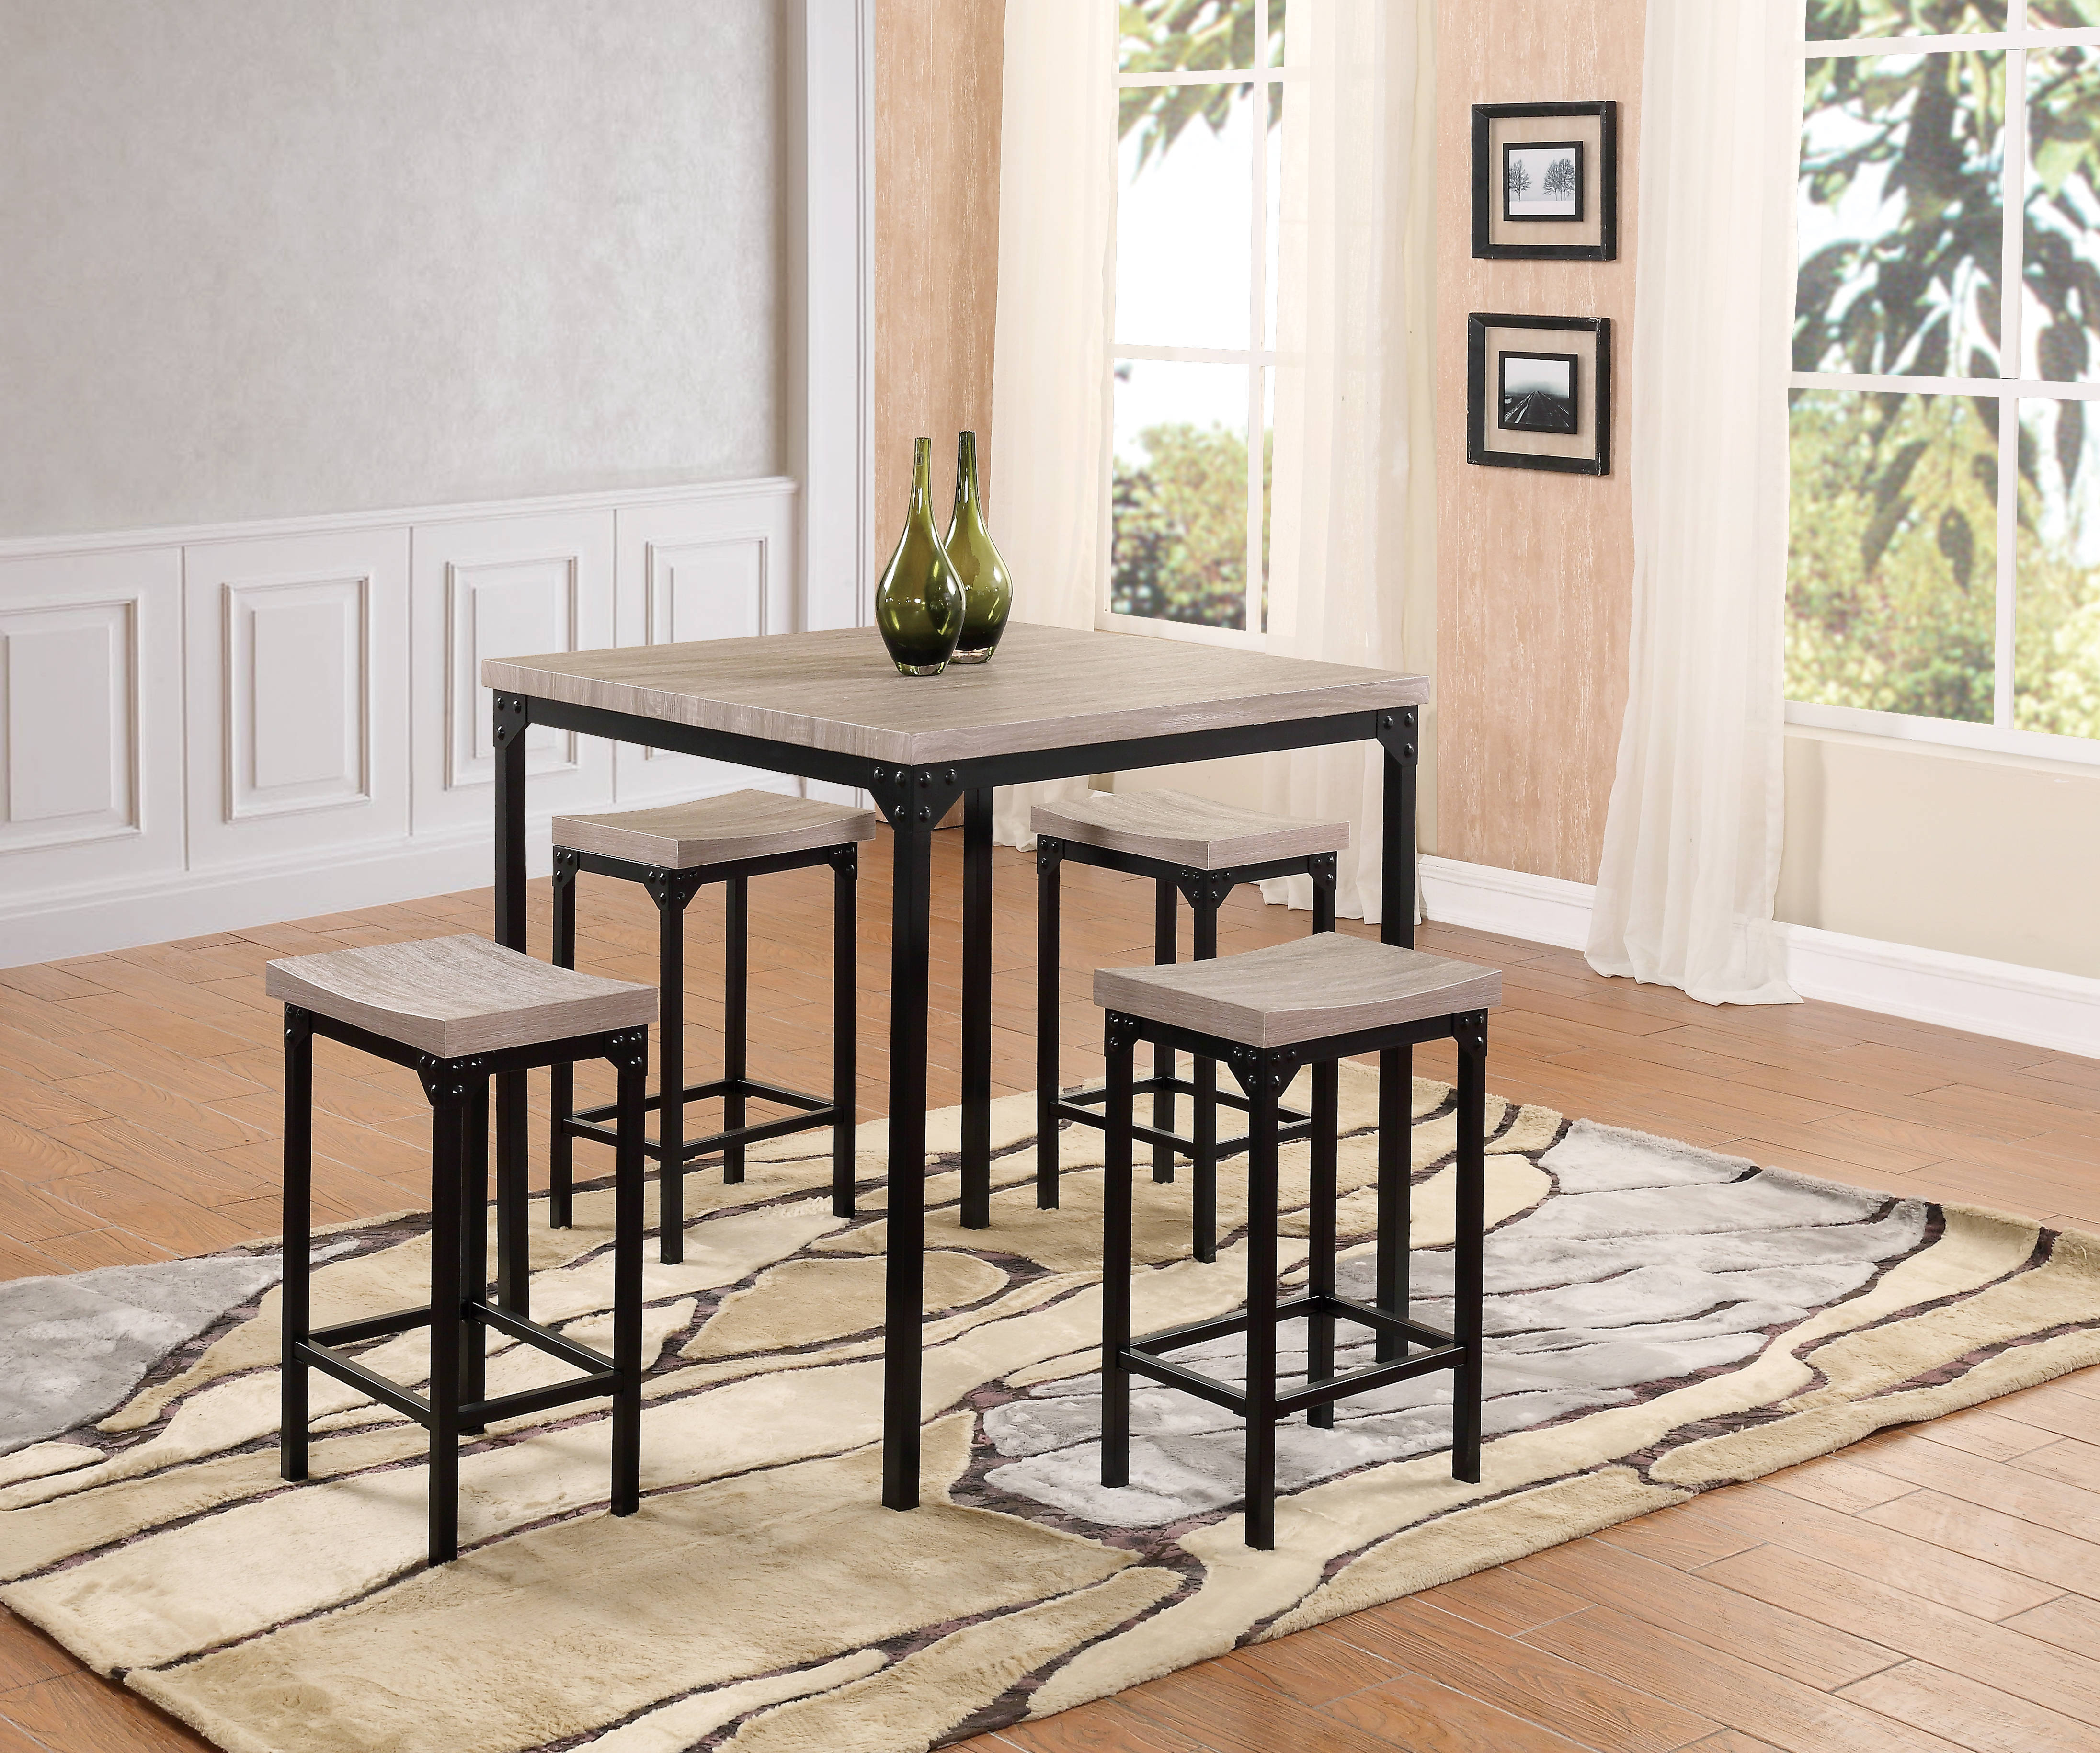 Home Design Ideas Intended For Middleport 5 Piece Dining Sets (View 5 of 25)